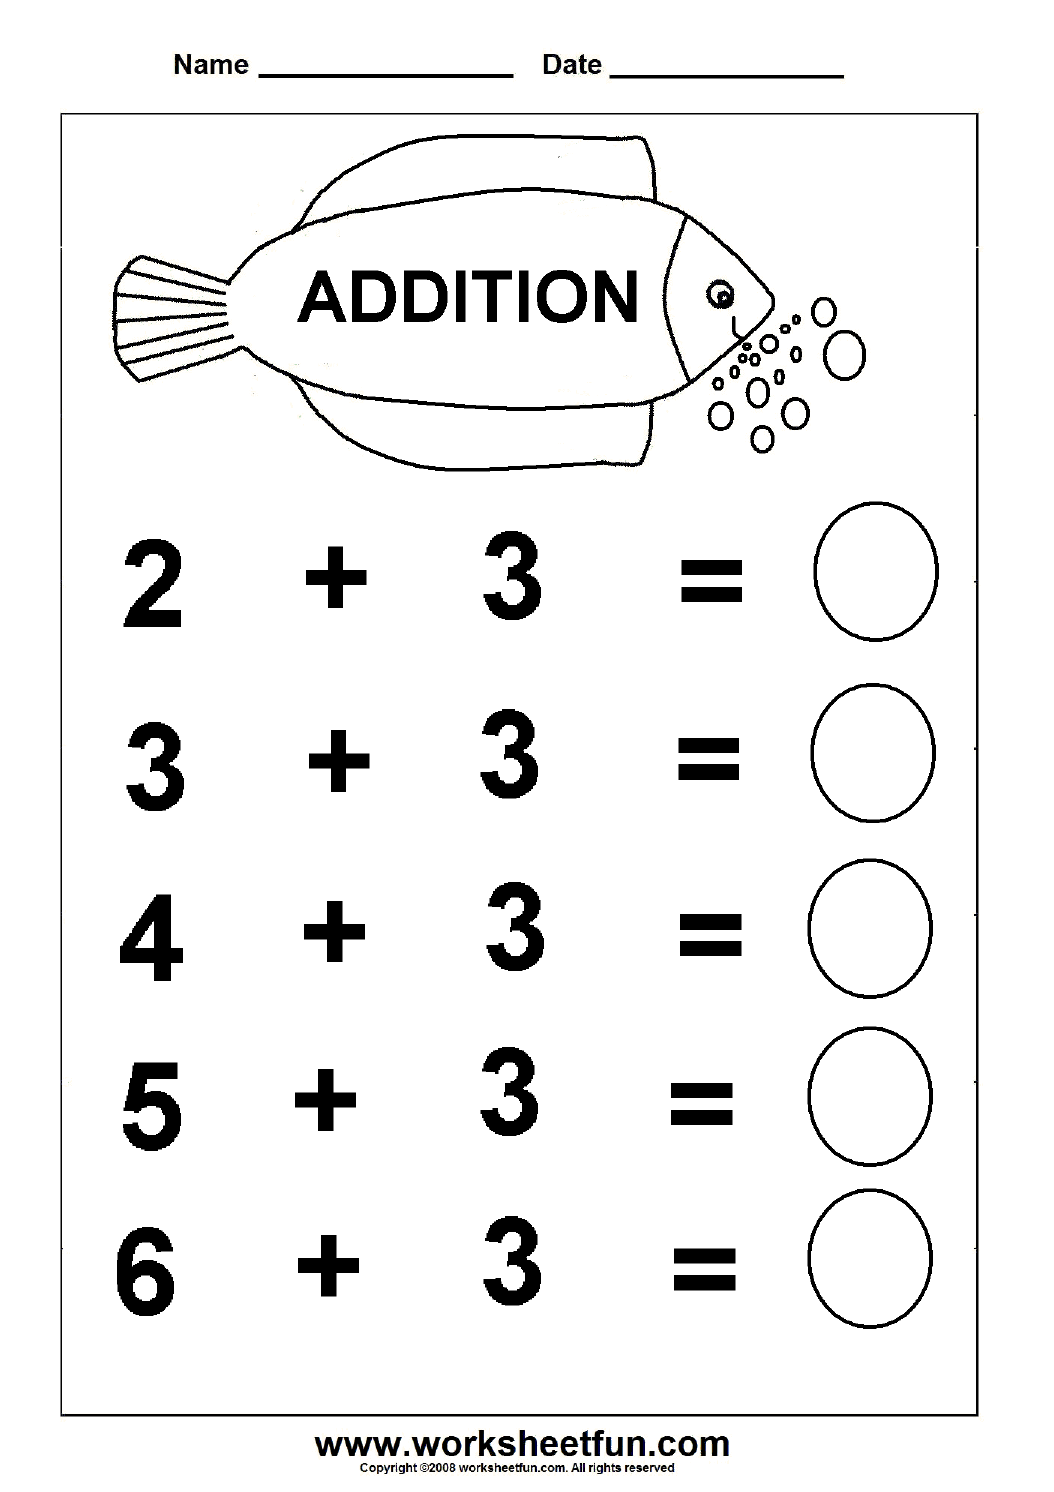 Worksheets Free Printable Simple Addition Worksheets beginner addition 6 kindergarten worksheets free subtraction worksheets